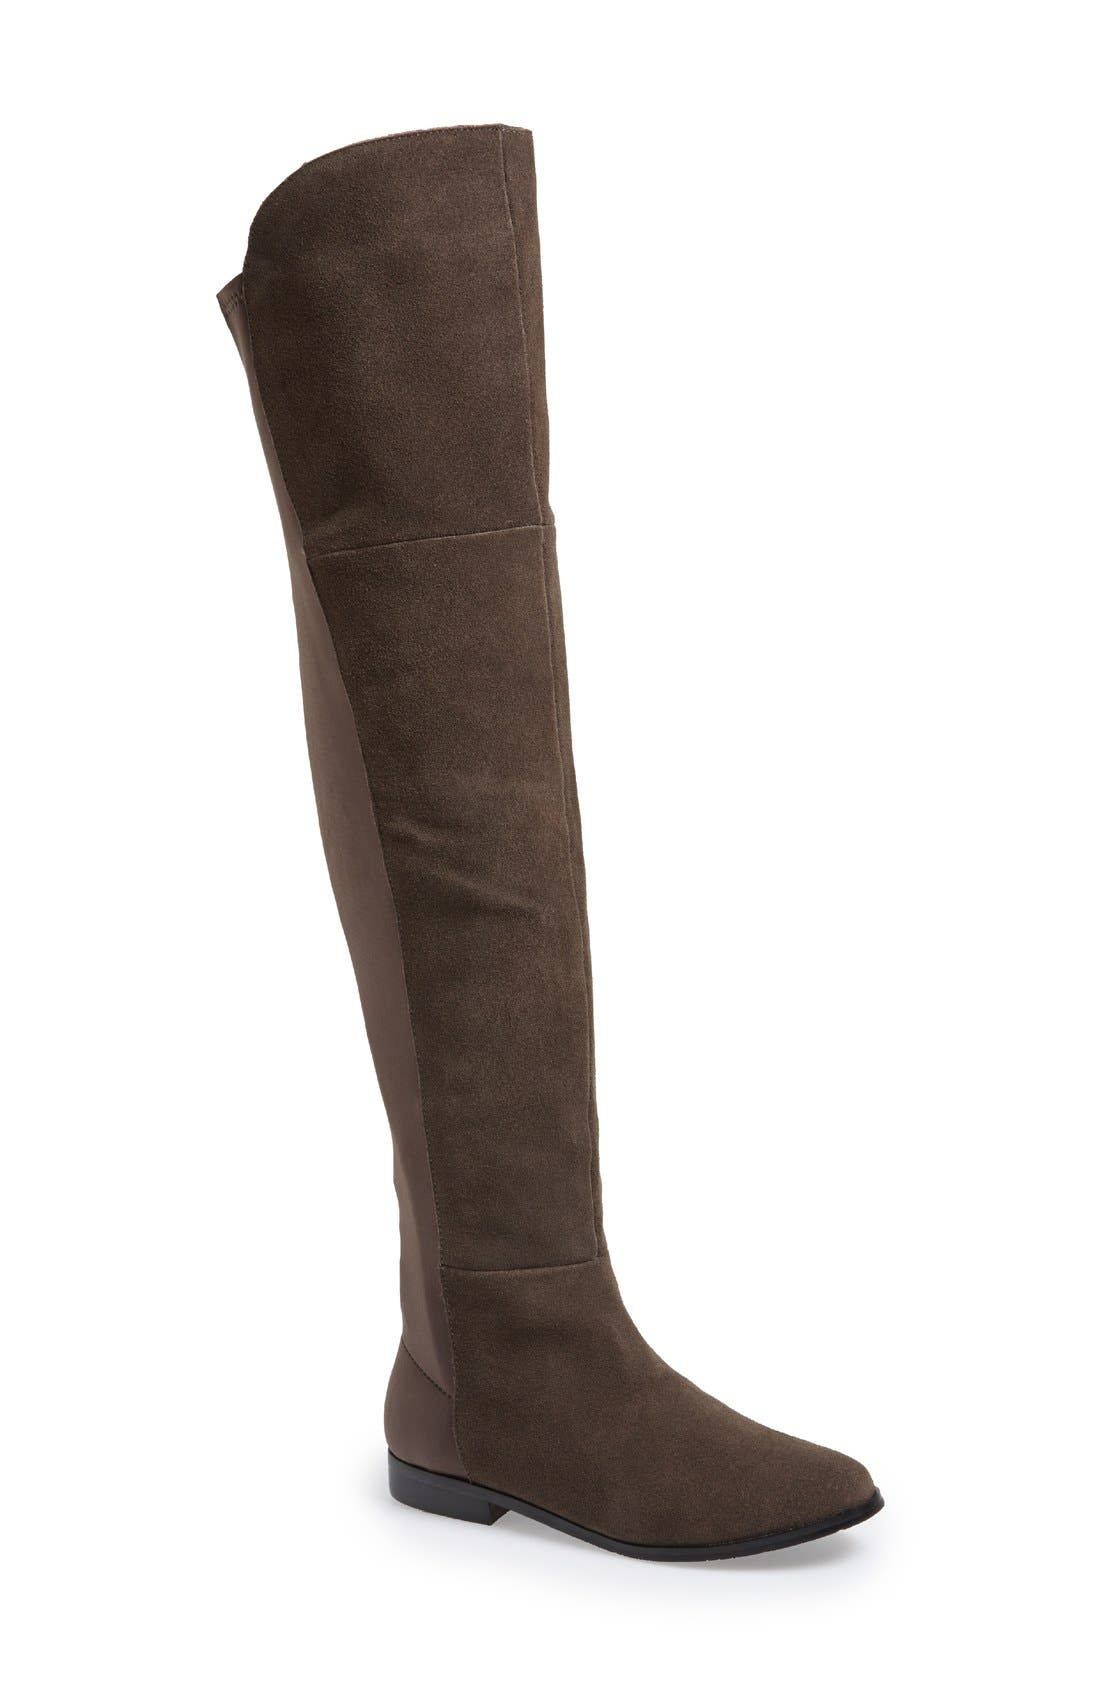 Alternate Image 1 Selected - Chinese Laundry 'Riley' Stretch Back Suede Over The Knee Boot (Women)